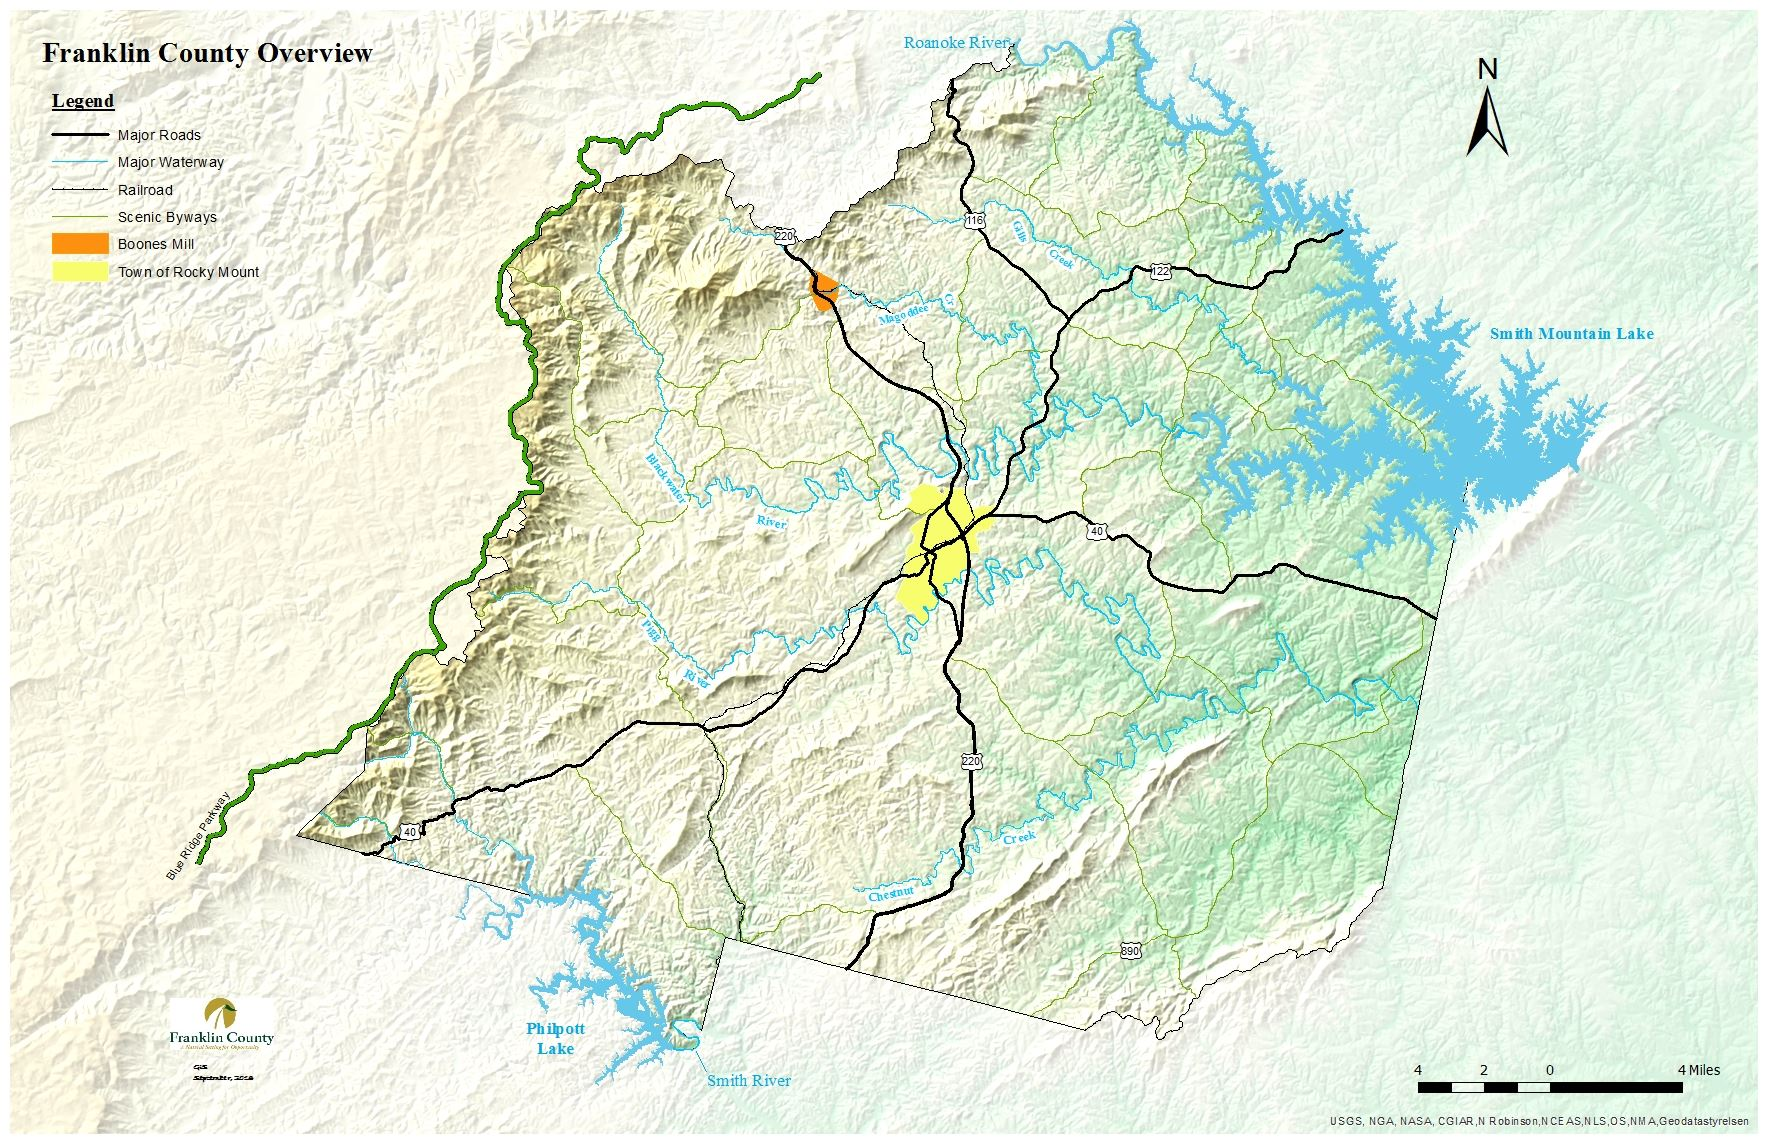 Franklin County Map showing major roadways, major waterways, railroads, scenic byways, Boones Mill,